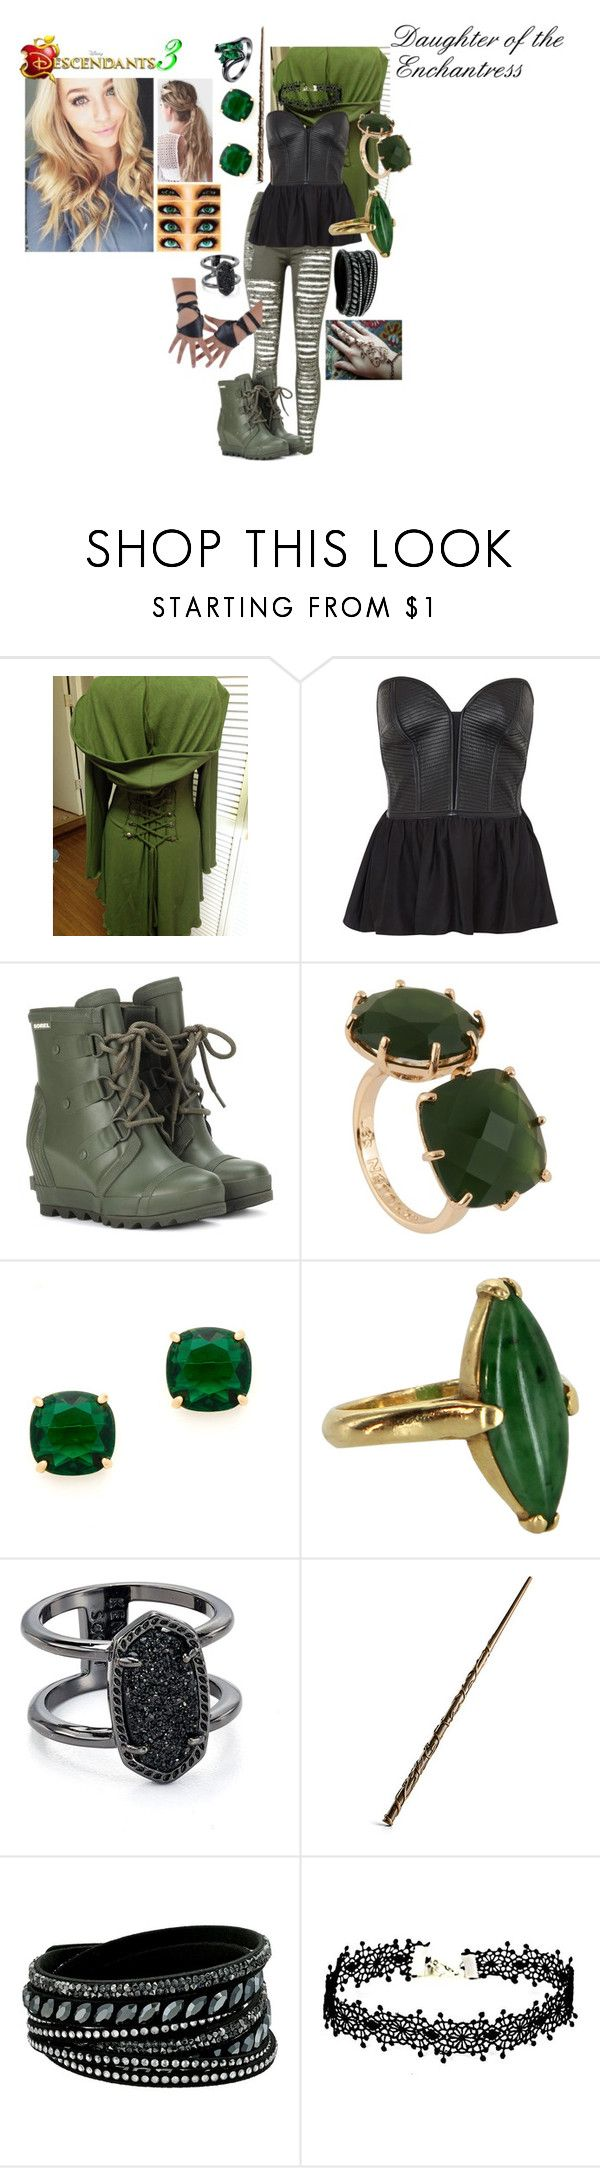 """""""Ember Chanted, daughter of the Enchantress"""" by frootloop16 ❤ liked on Polyvore featuring Parker, SOREL, Les Néréides, Kate Spade, Vintage, Kendra Scott and Swarovski"""